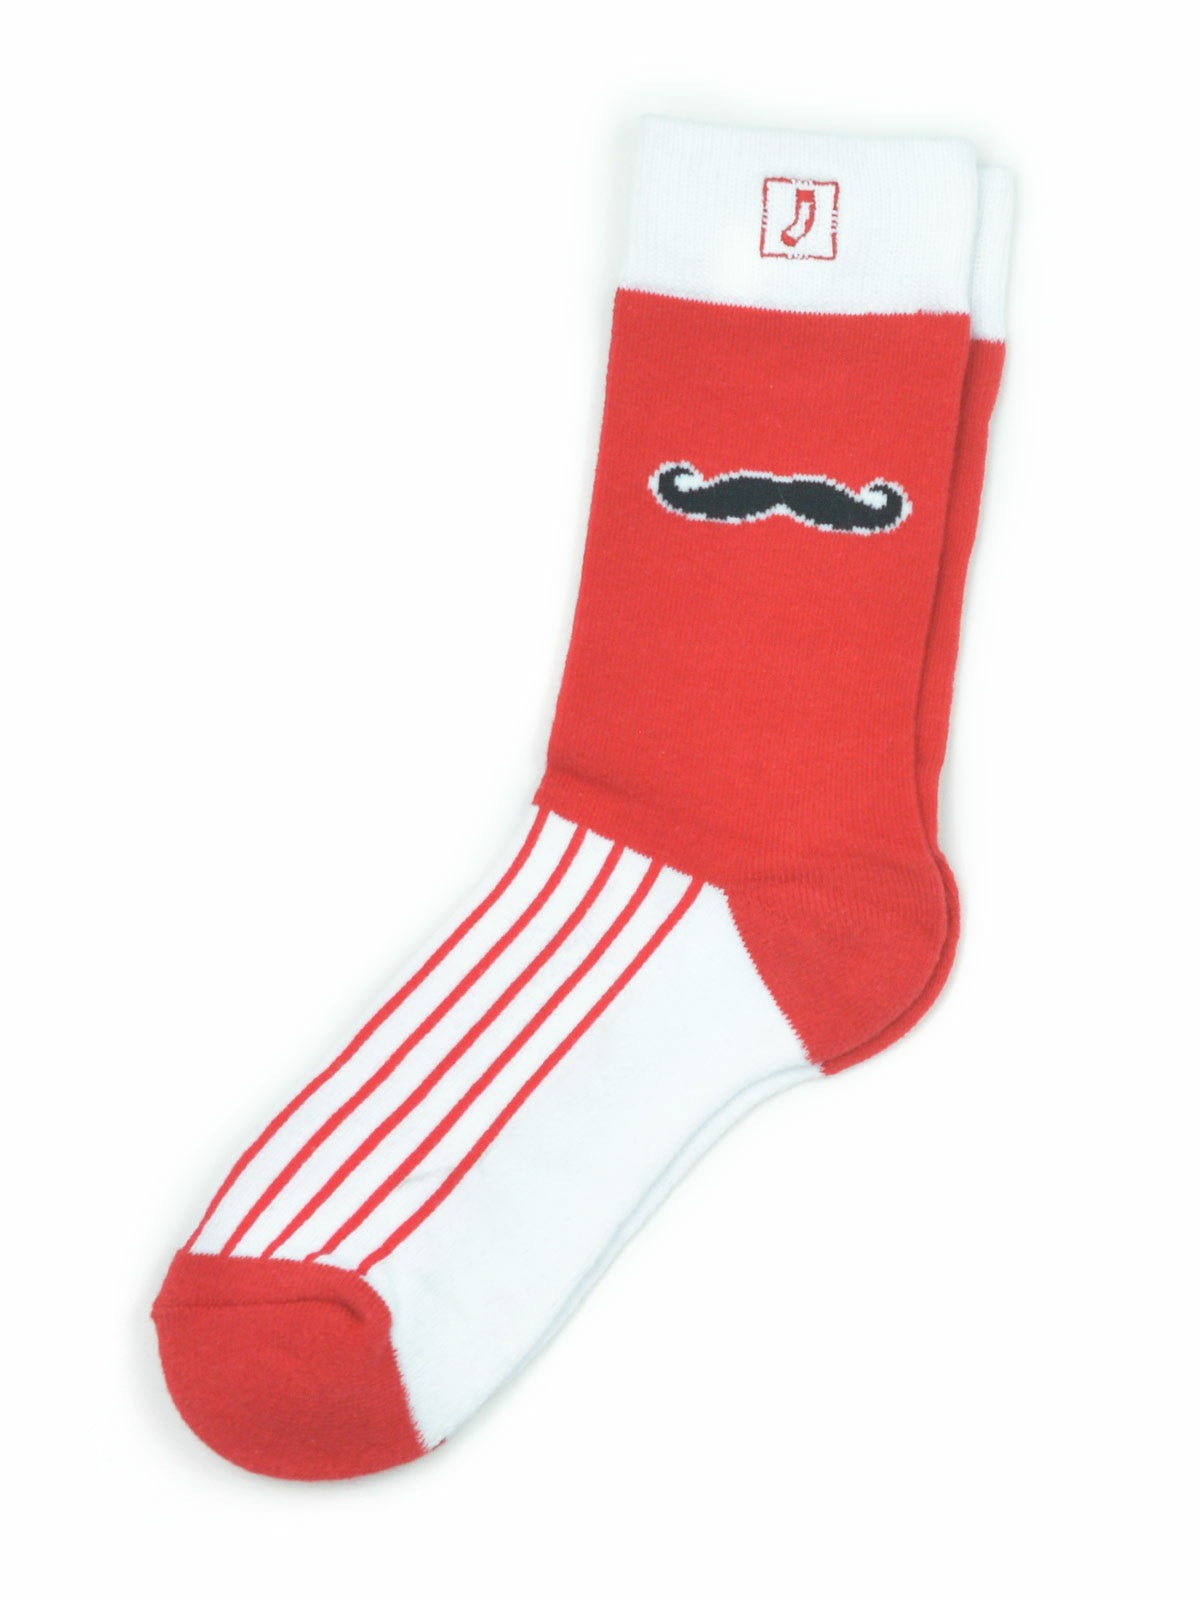 Unisex Novelty Ohio Themed Socks (Variety of Images)